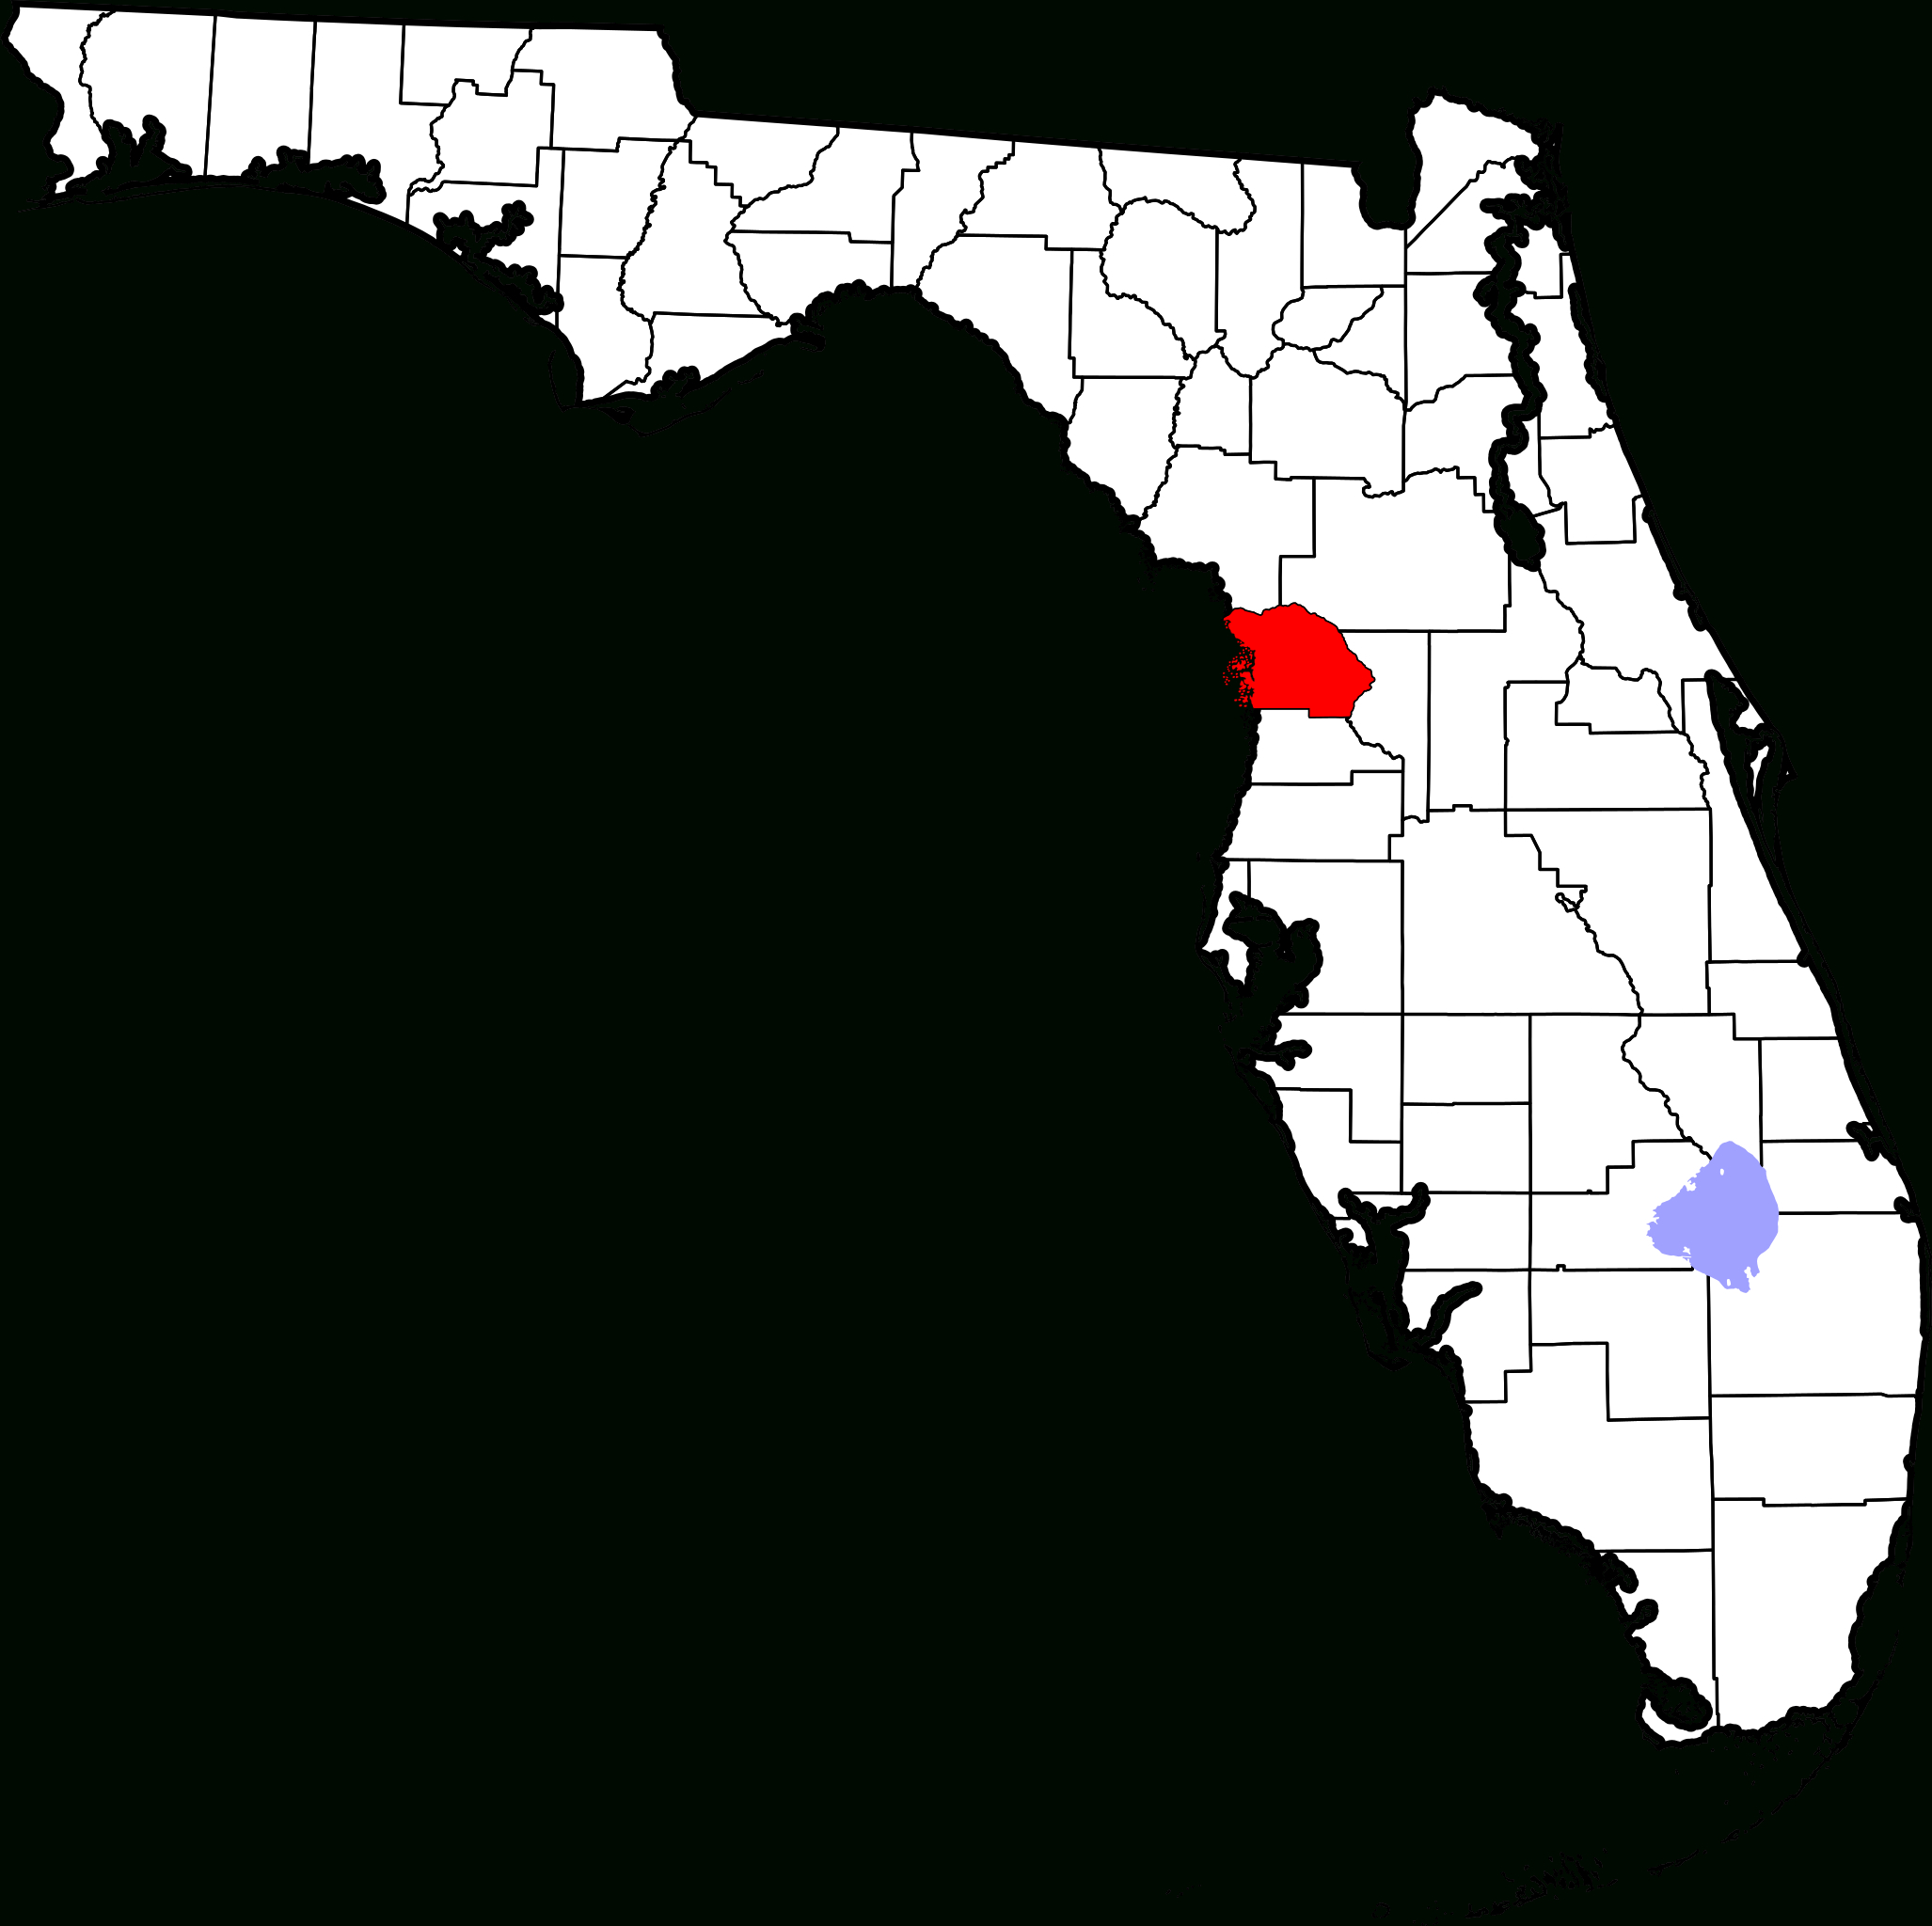 File:map Of Florida Highlighting Citrus County.svg - Wikipedia - Lecanto Florida Map